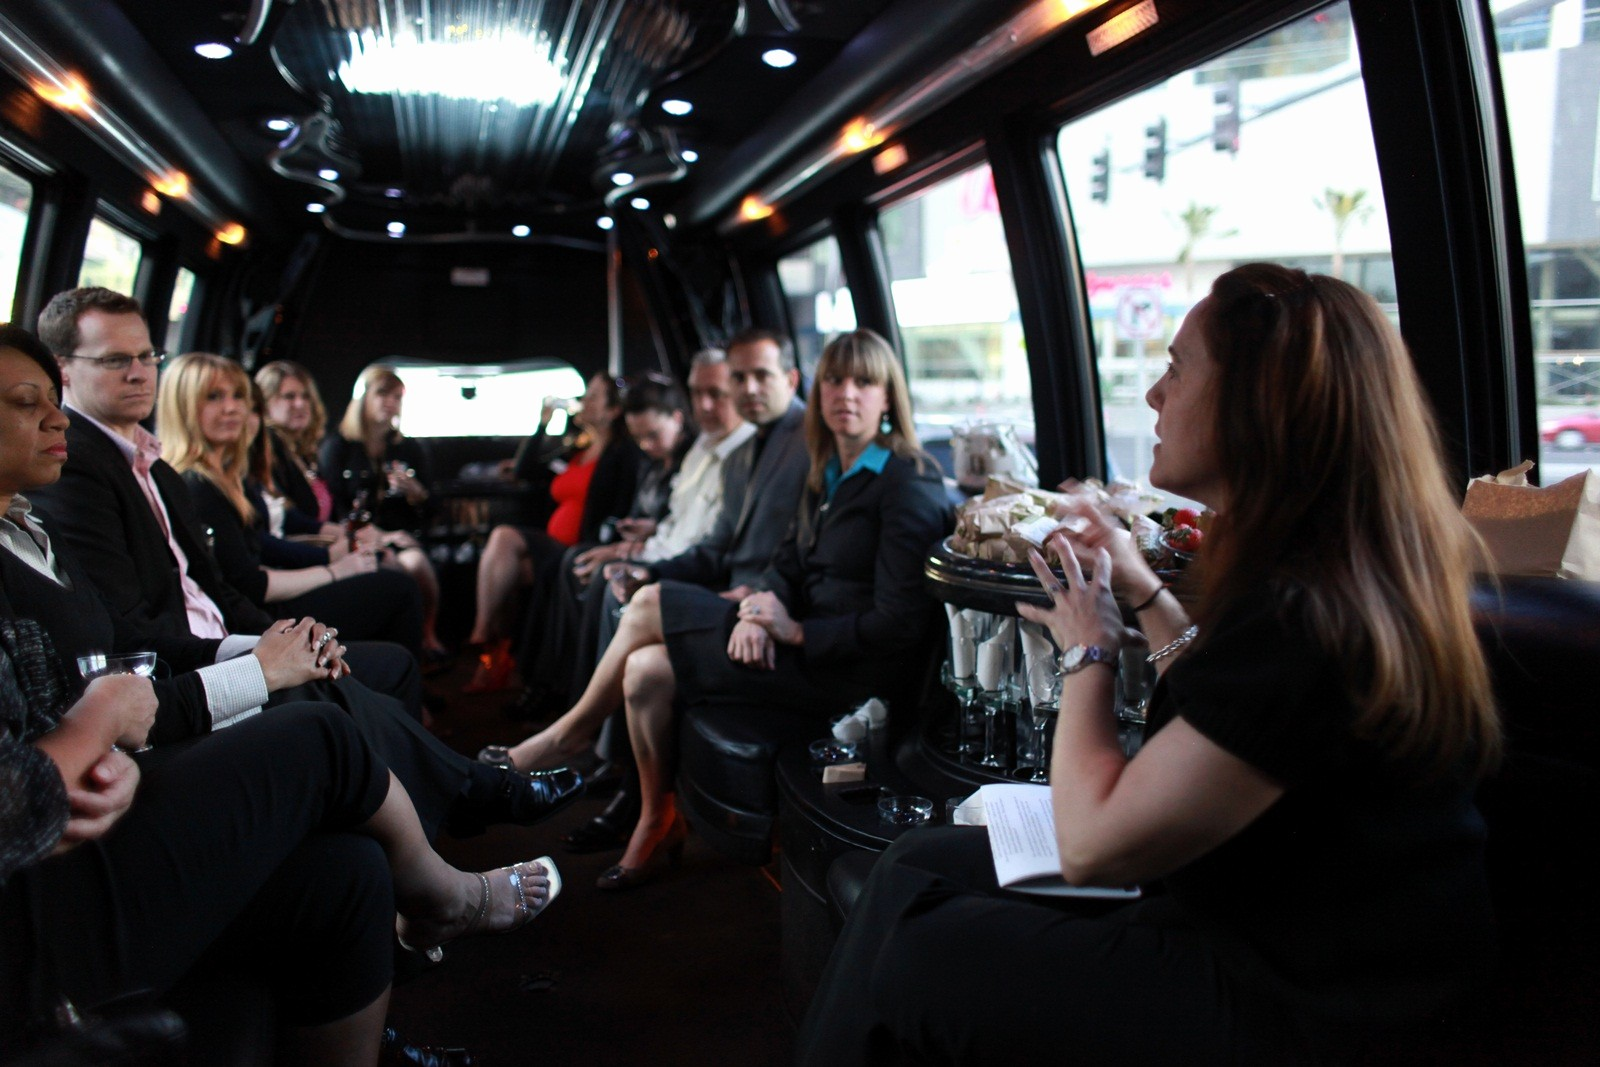 At Meeting or In Meeting Beautiful Our Services Earth Limos and Buses Blog Earth Limos Blog